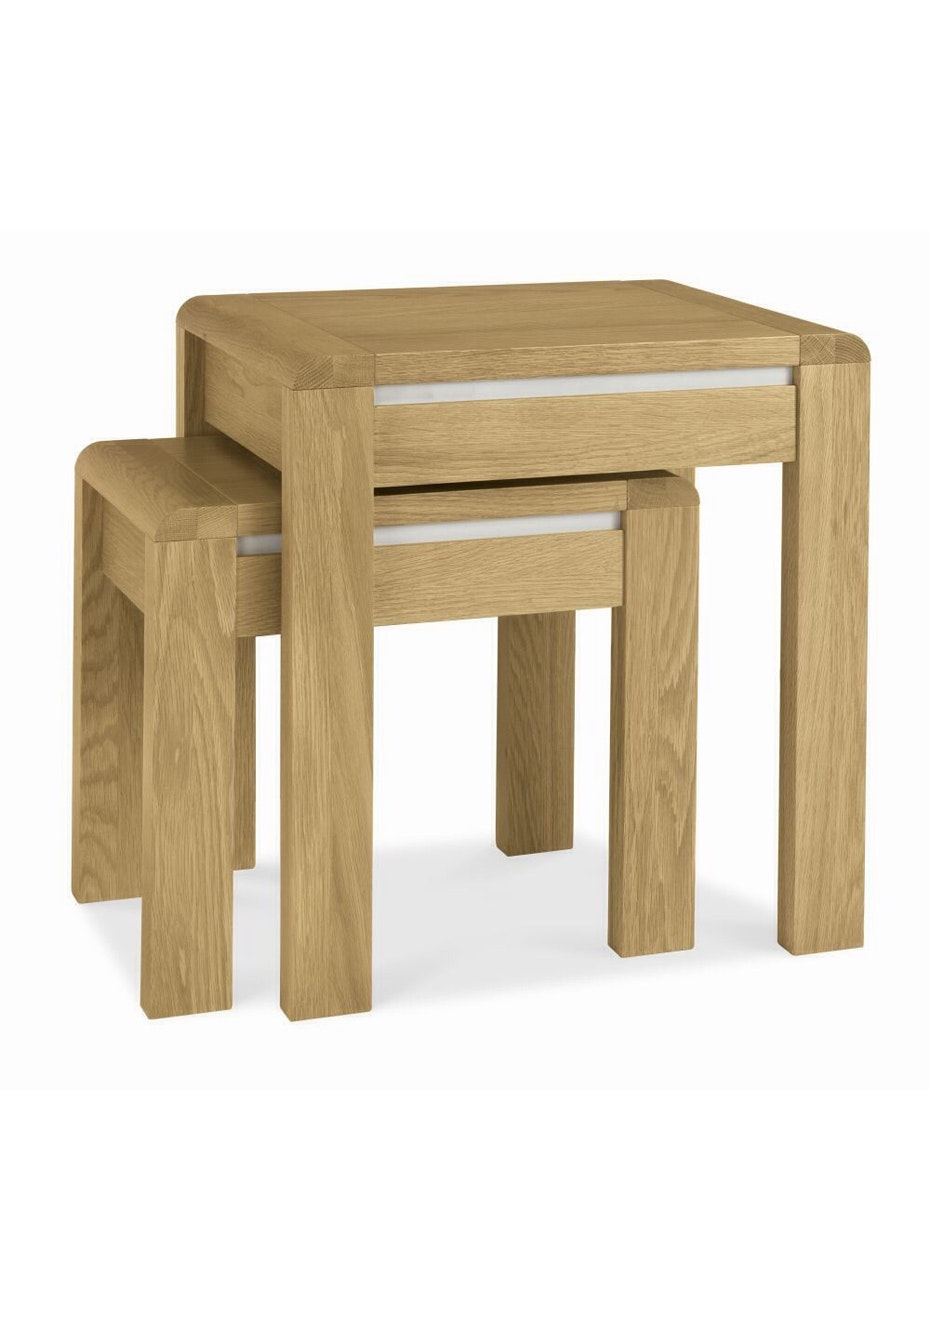 Furniture By Design - Casa Oak Nest of Tables- Light Oak